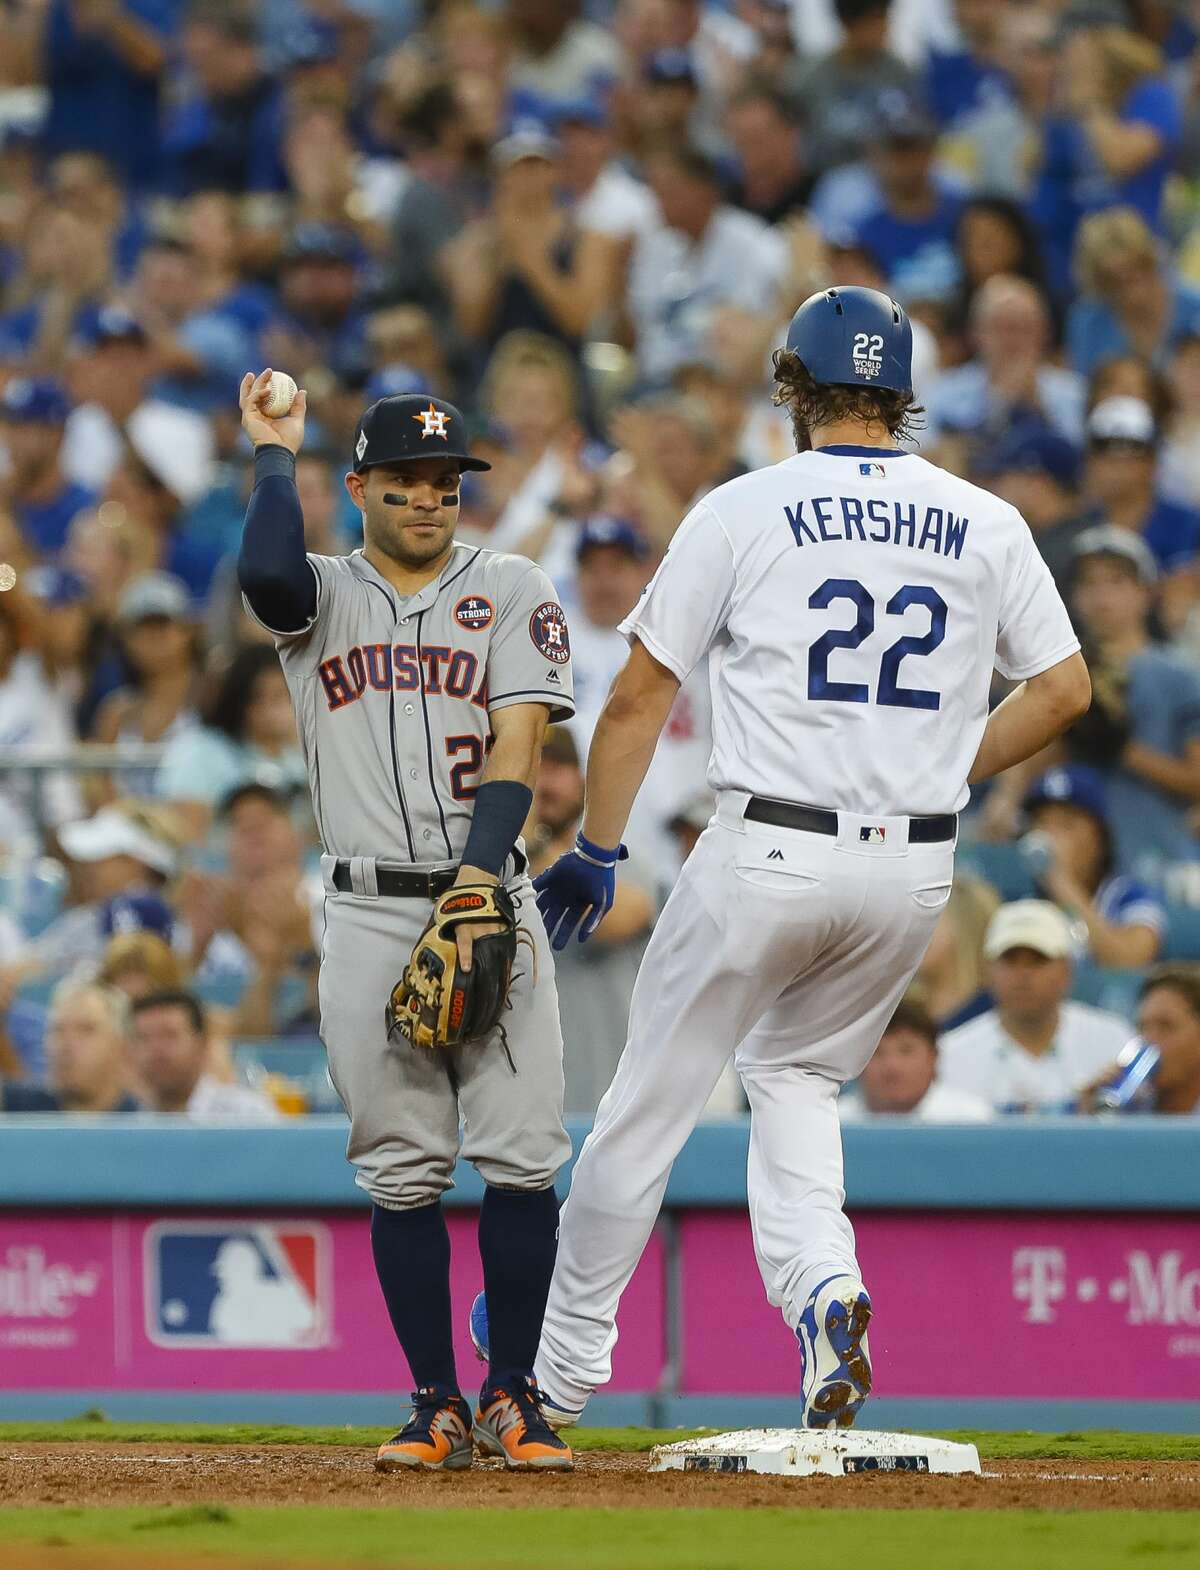 Houston Astros second baseman Jose Altuve (27) forces Los Angeles Dodgers starting pitcher Clayton Kershaw (22) out at first during the third inning of Game 1 of the World Series at Dodger Stadium on Tuesday, Oct. 24, 2017, in Los Angeles. ( Brett Coomer / Houston Chronicle )